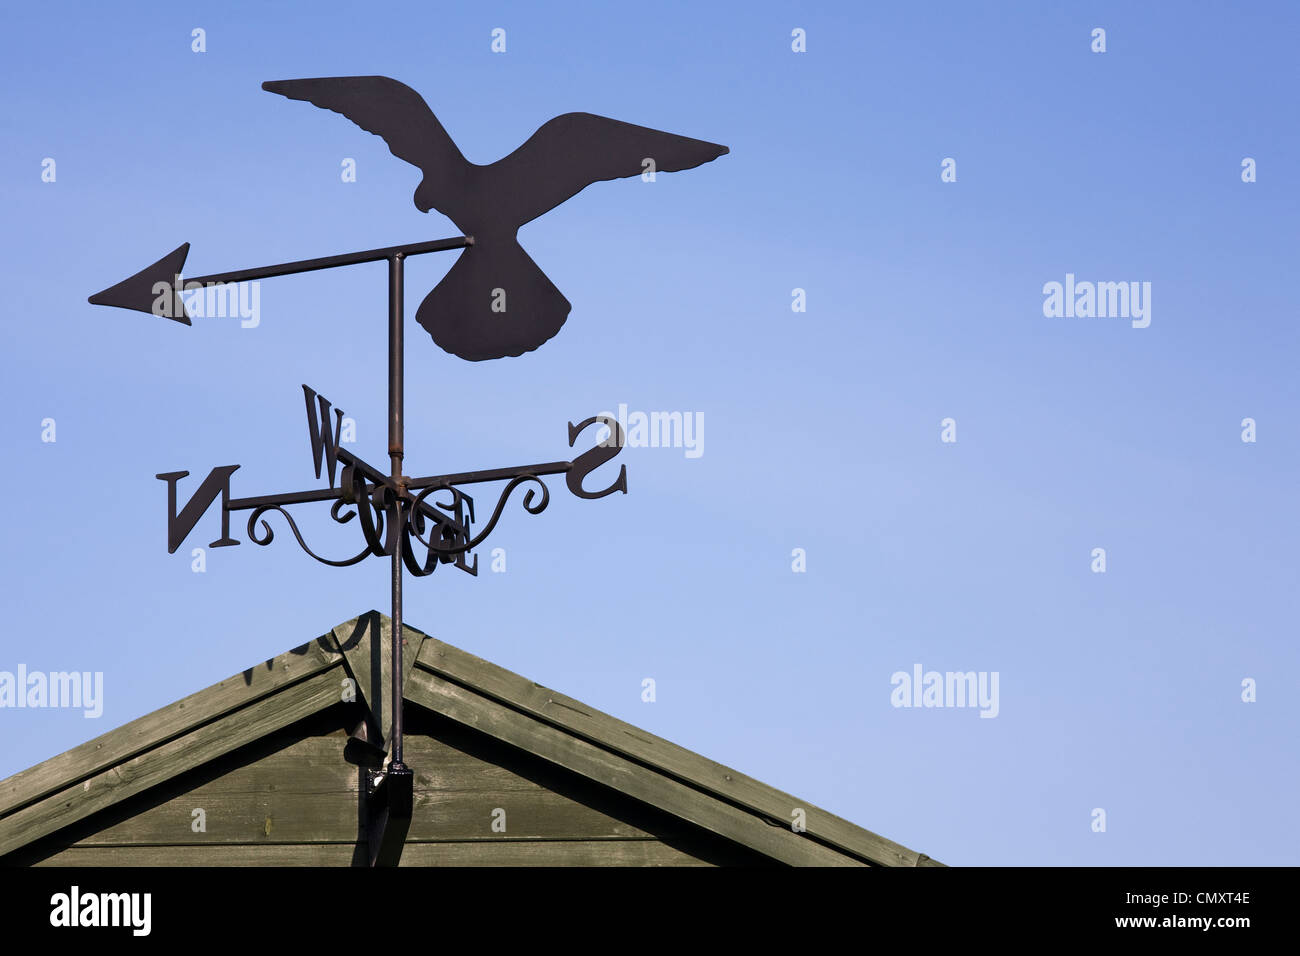 falcon weather vane on a garden shed against a blue sky - Weather Vanes